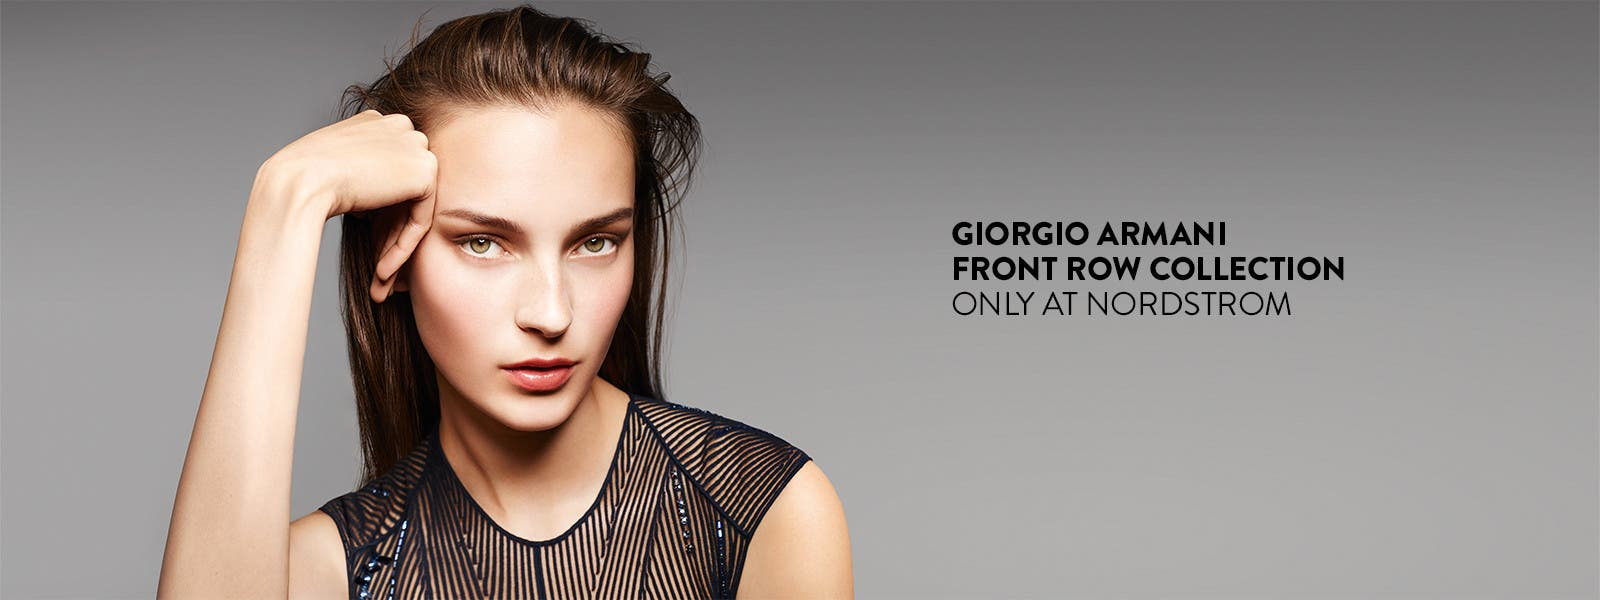 Giorgio Armani Front Row collection: only at Nordstrom.